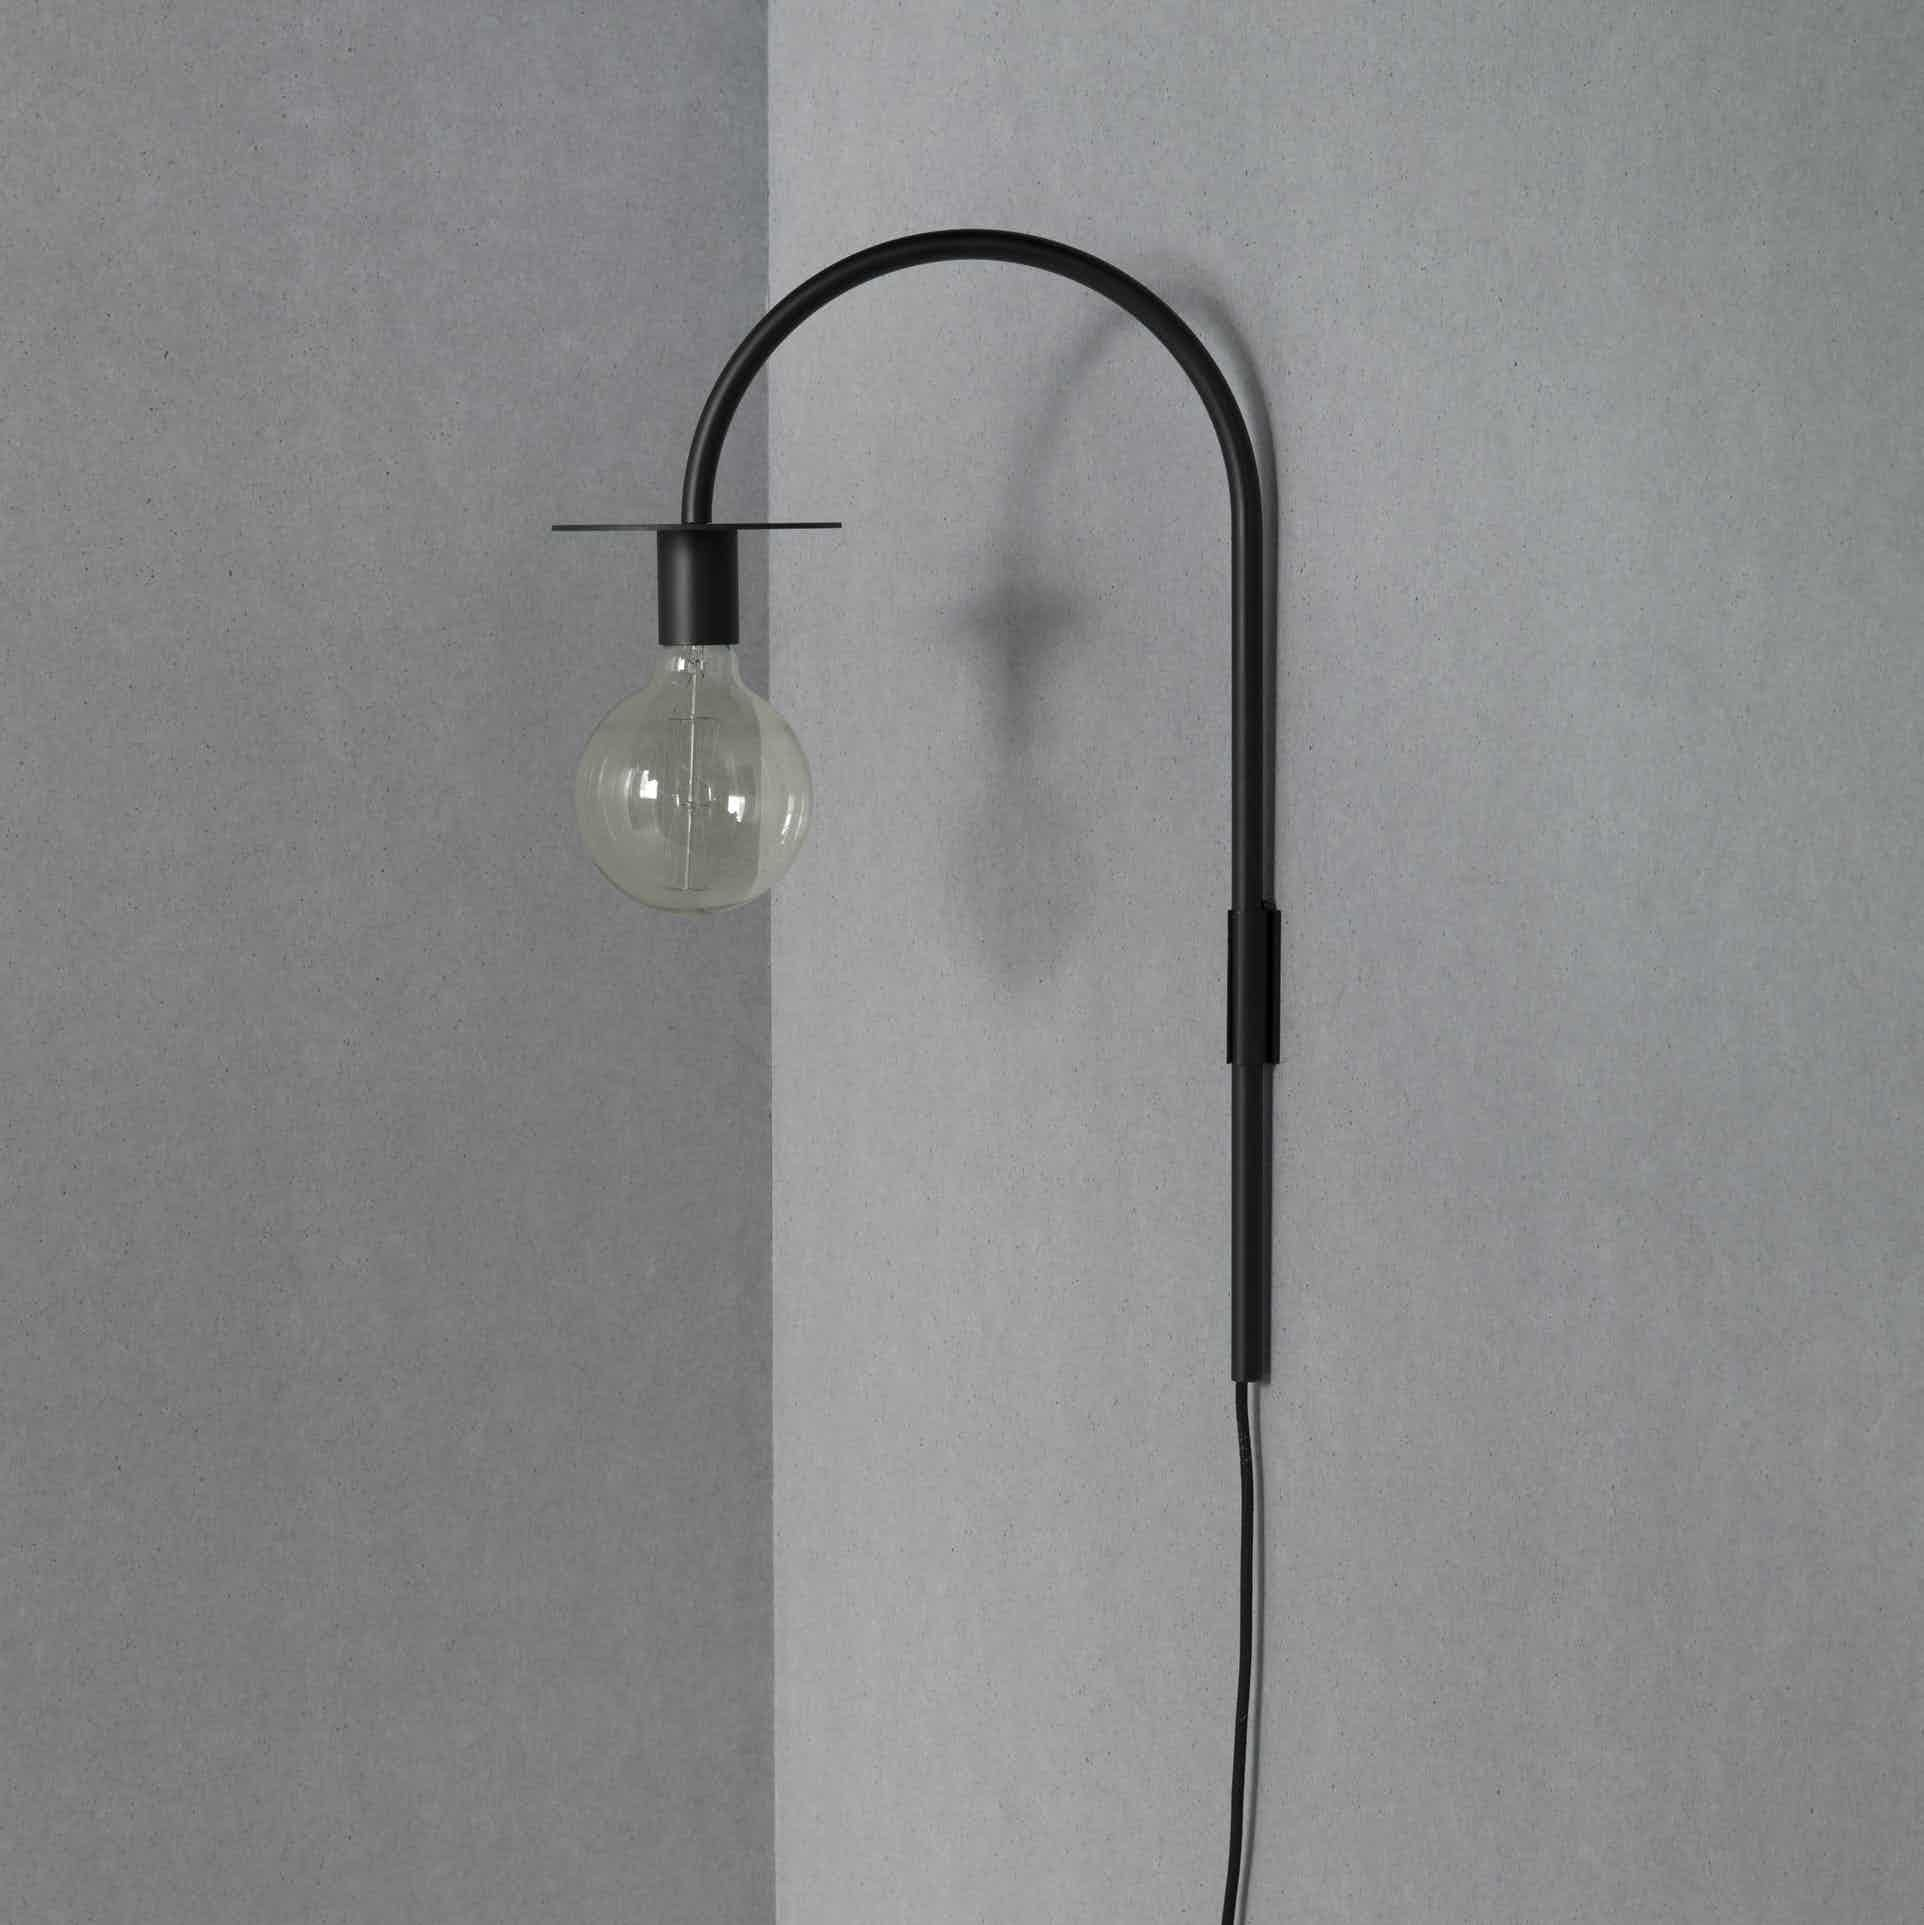 La Lampe Wall Lamp By Friends Founders Now Available At Haute